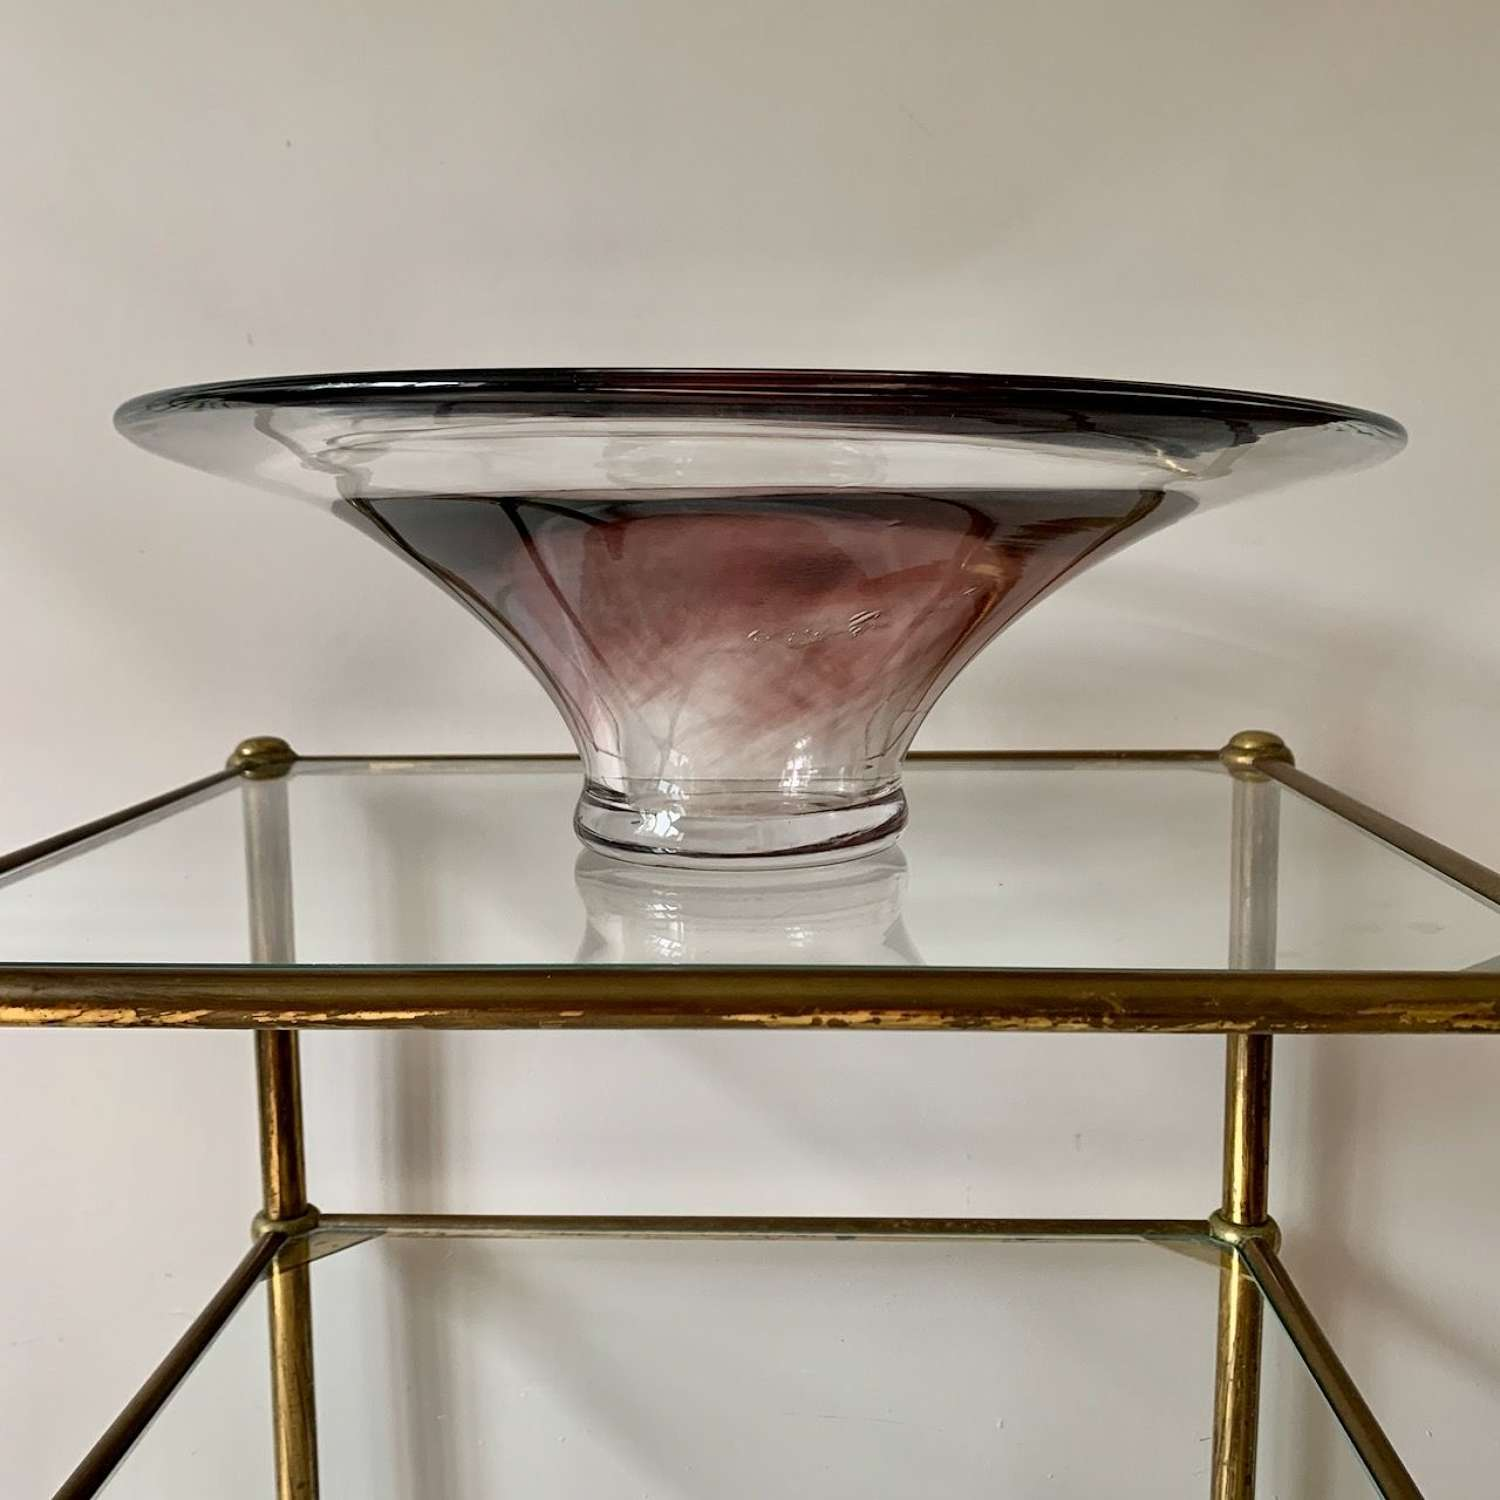 Glass bowl with aubergine inner